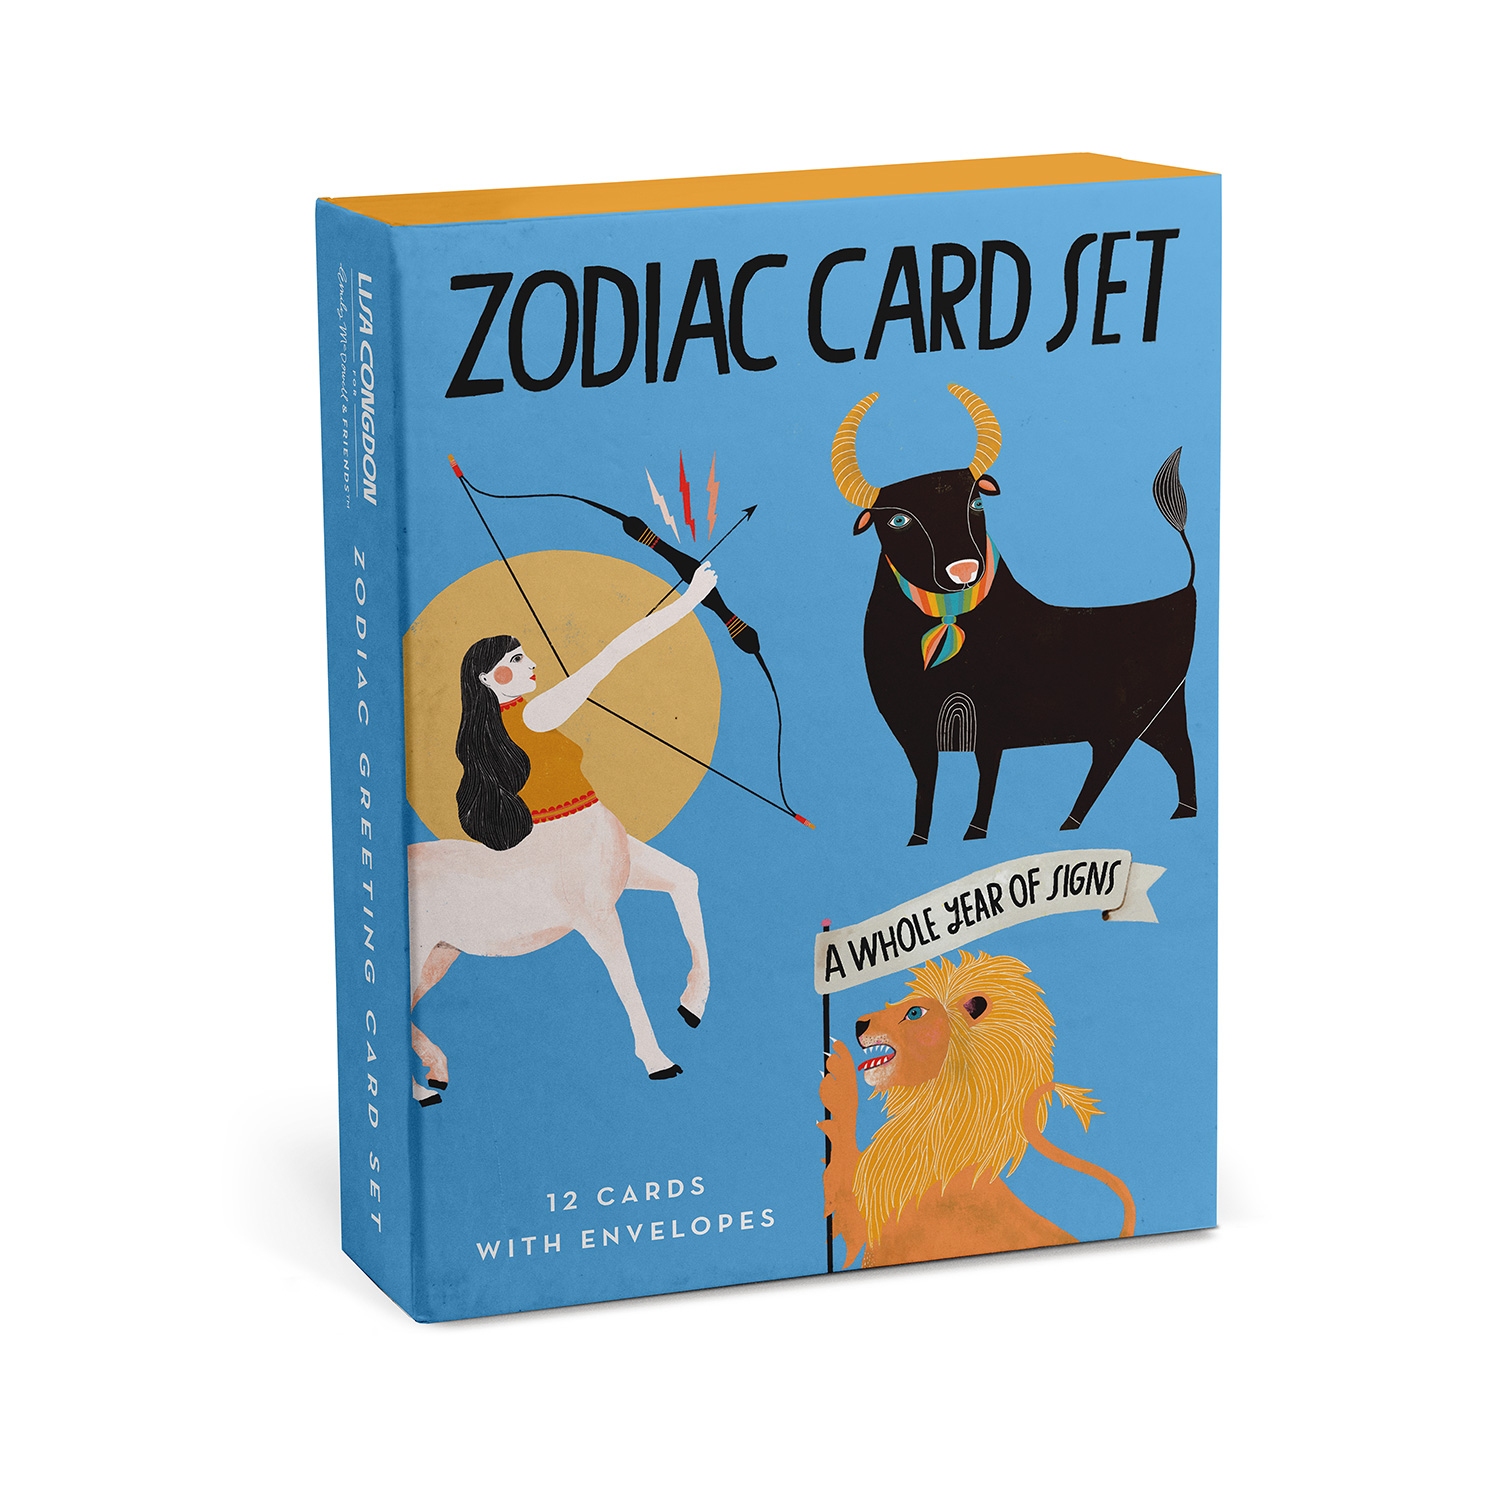 Zodiac Cards: Mixed Box Card Sets